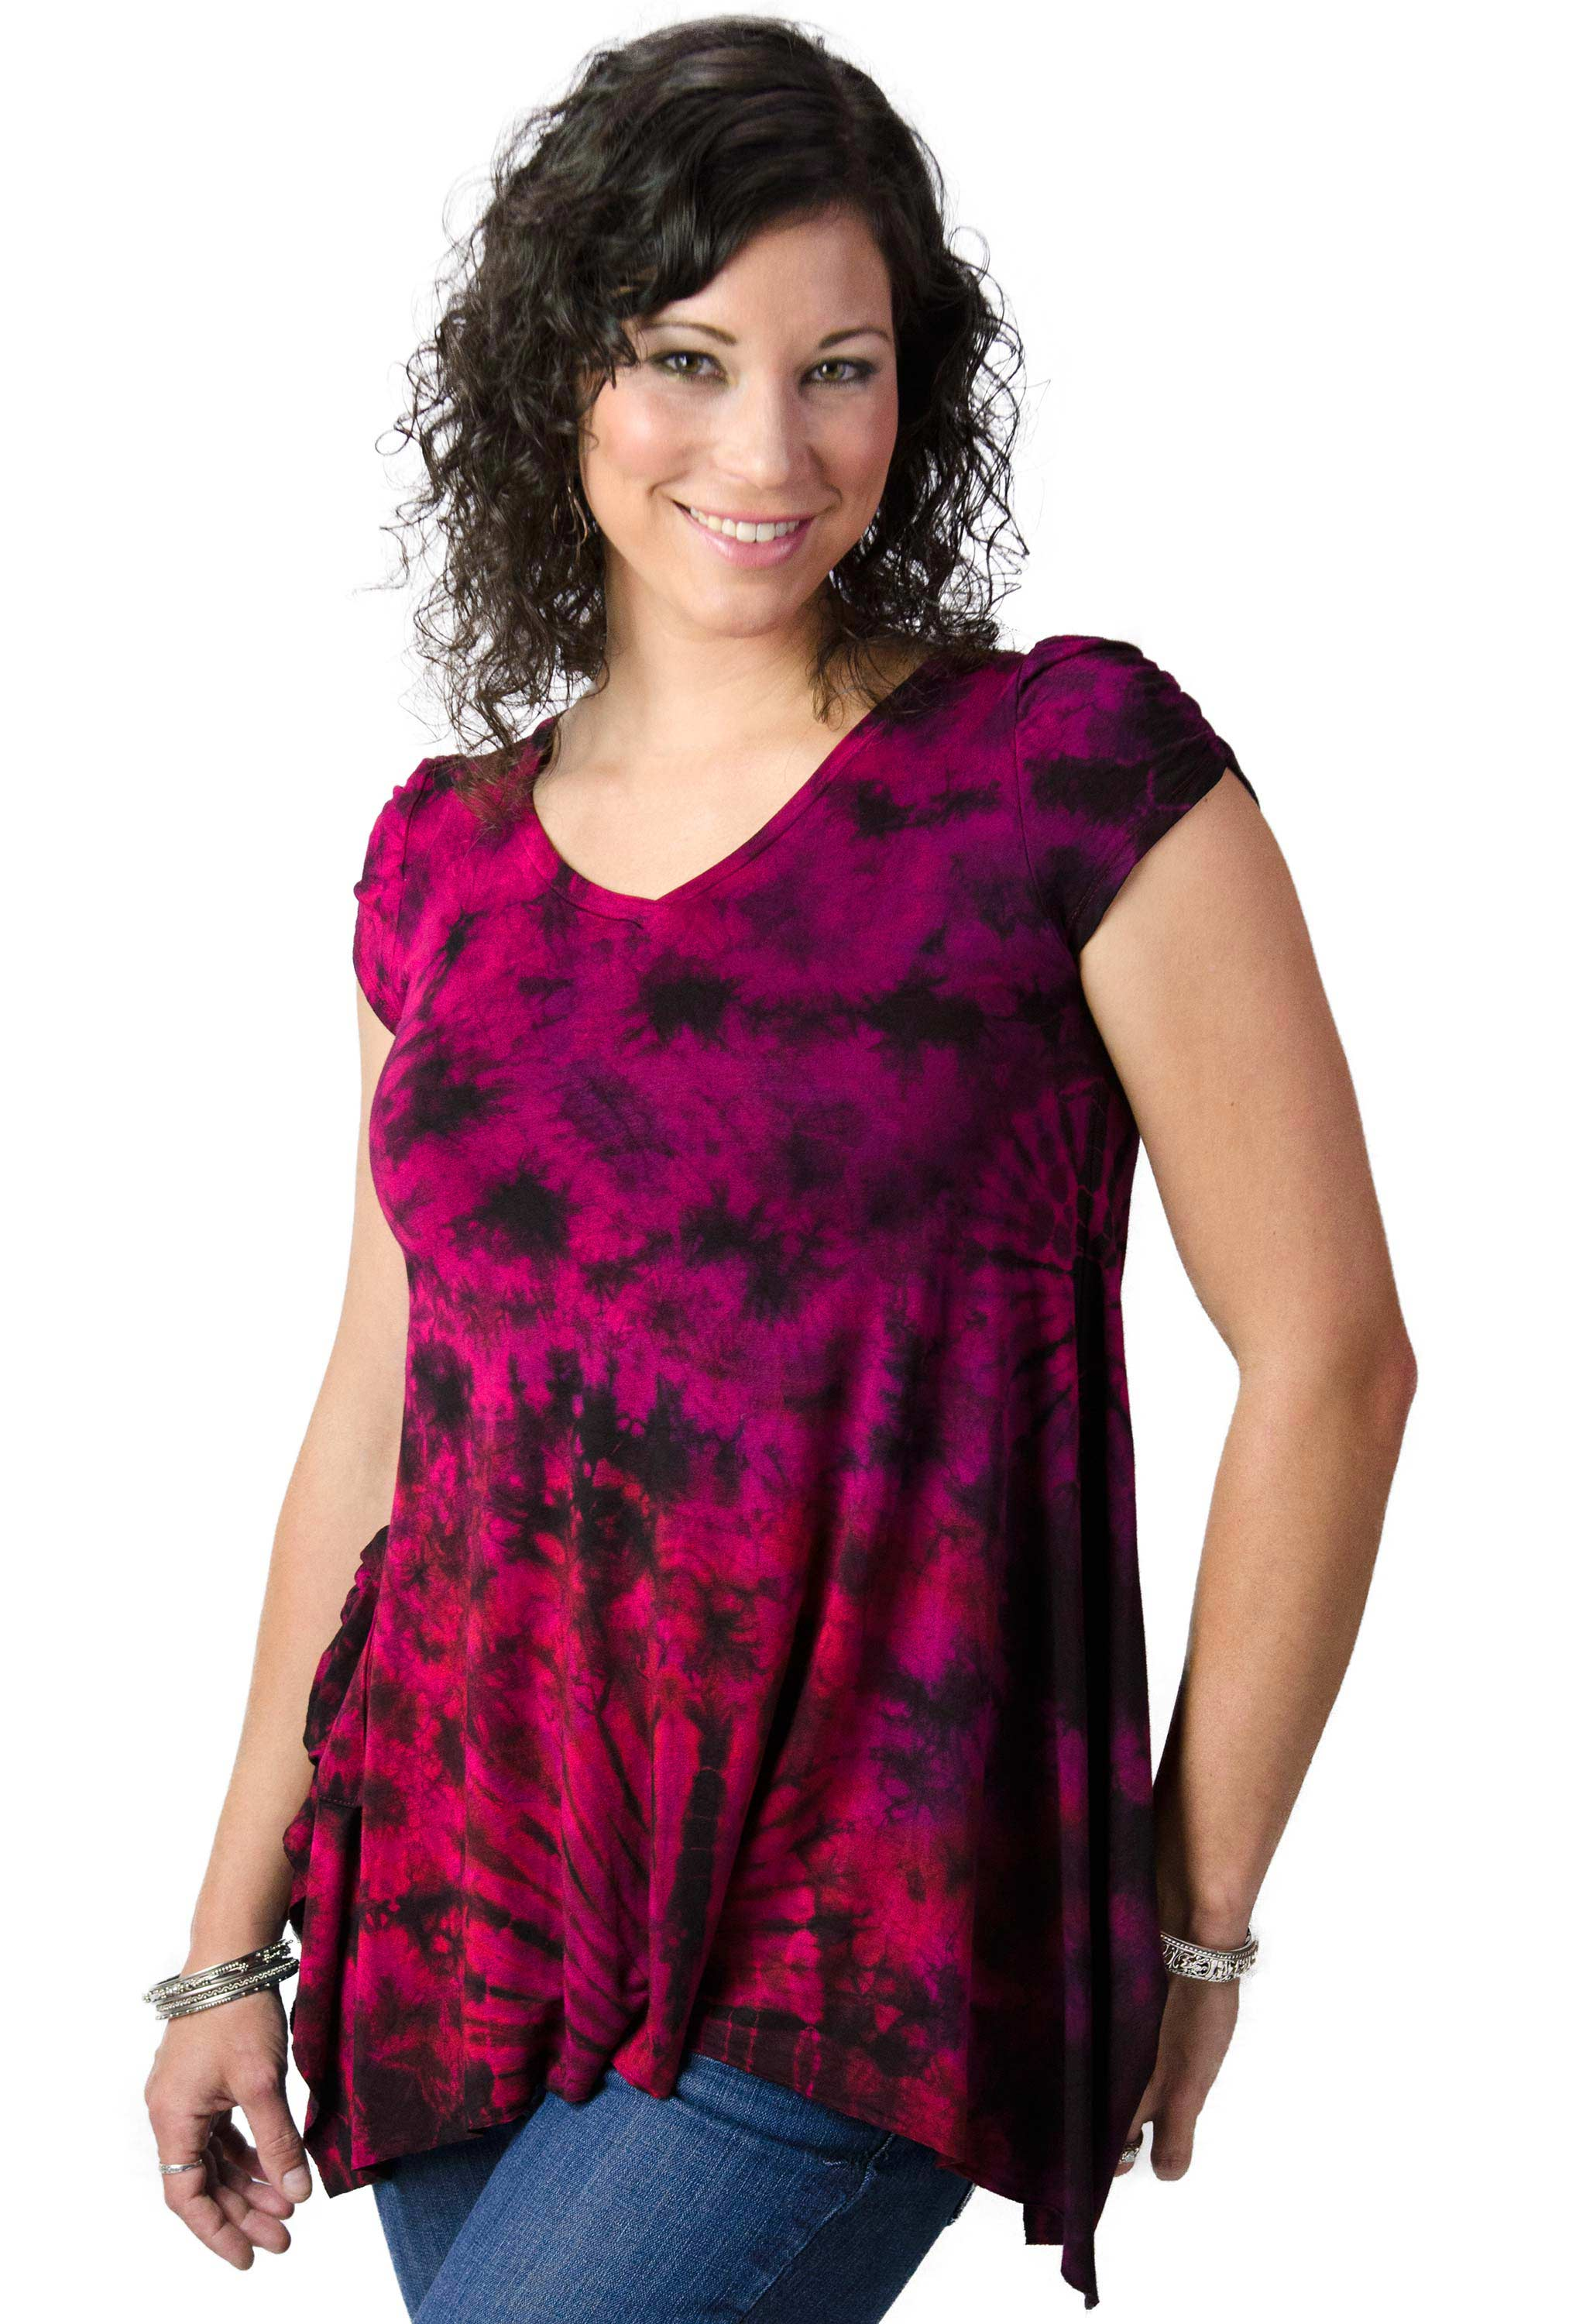 V-neck Blouse Hand Painted Tie Dye - Red Multi